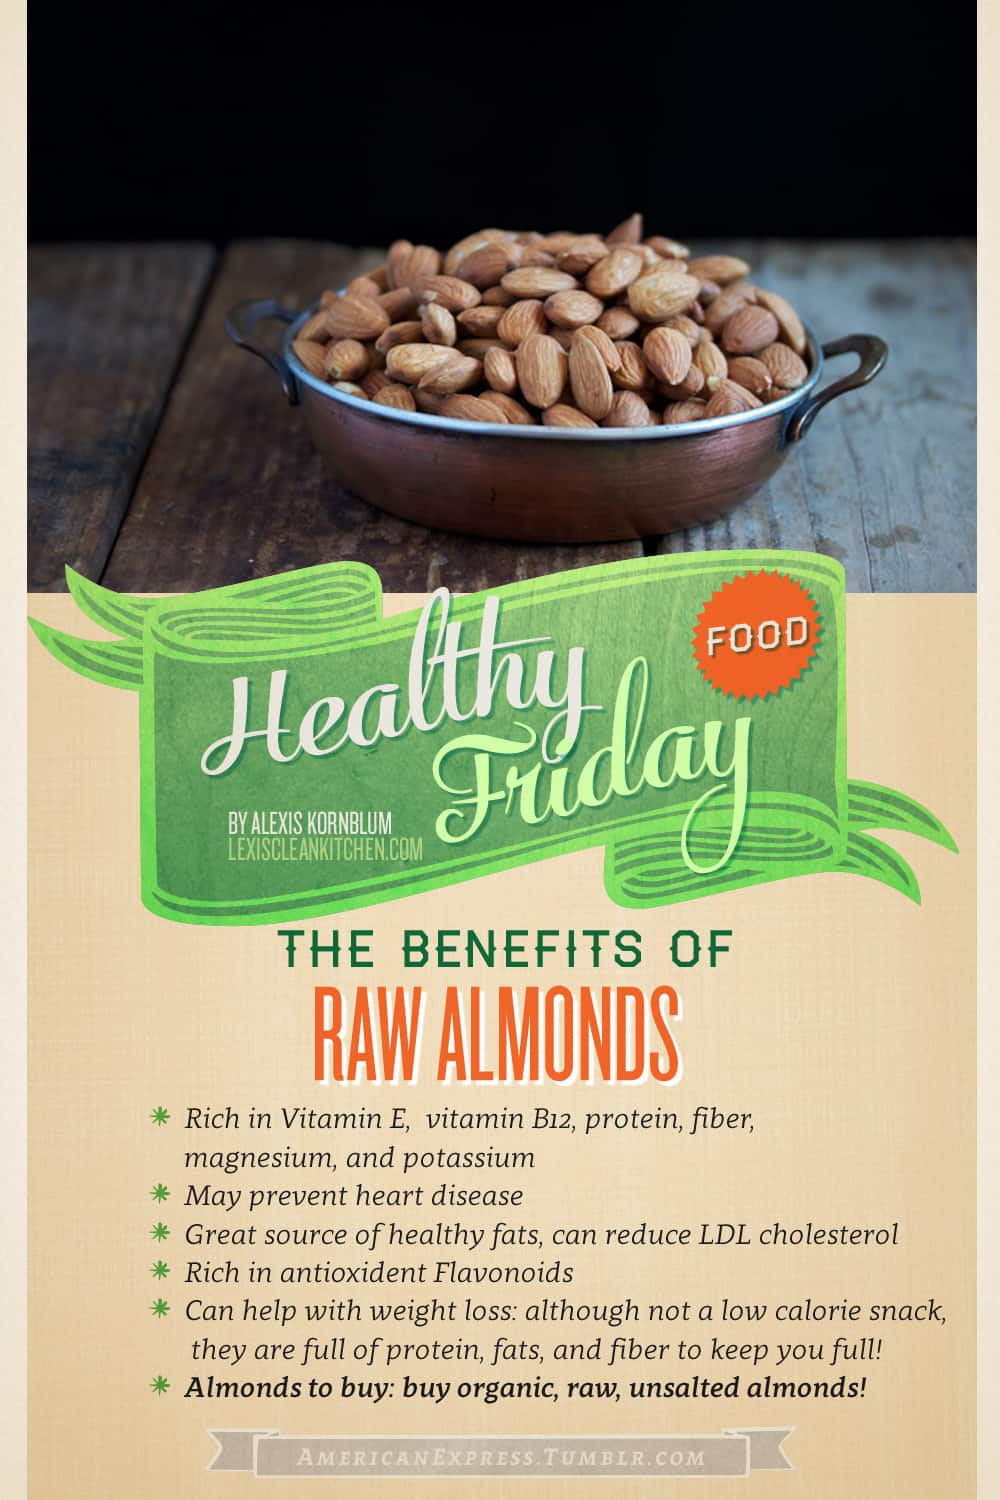 The Benefits of Raw Almonds